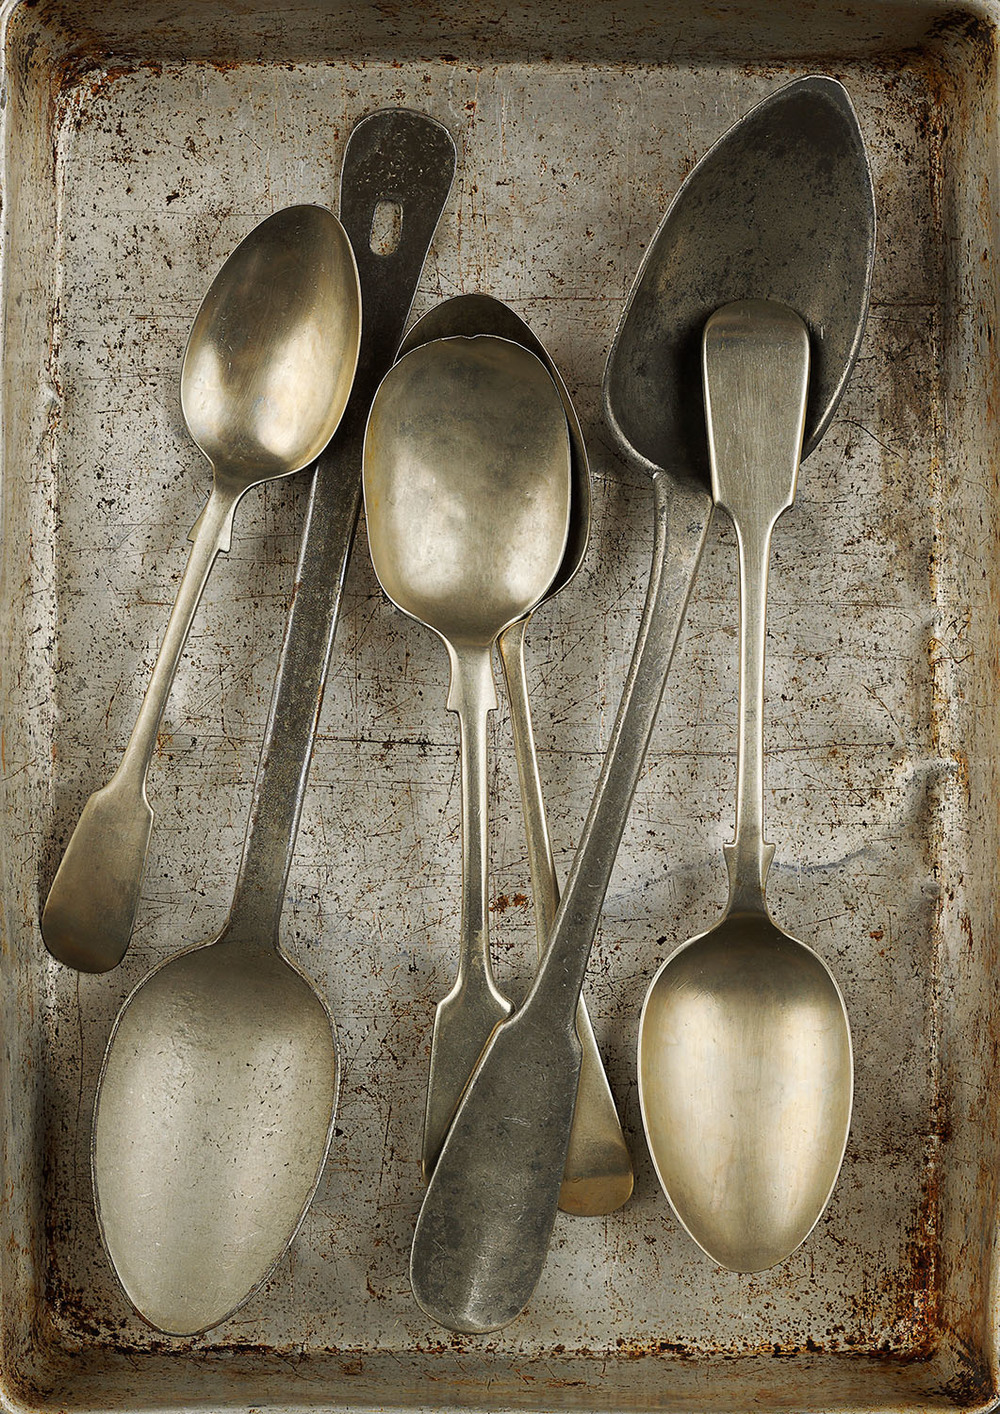 041_SpoonSelection_04.jpg